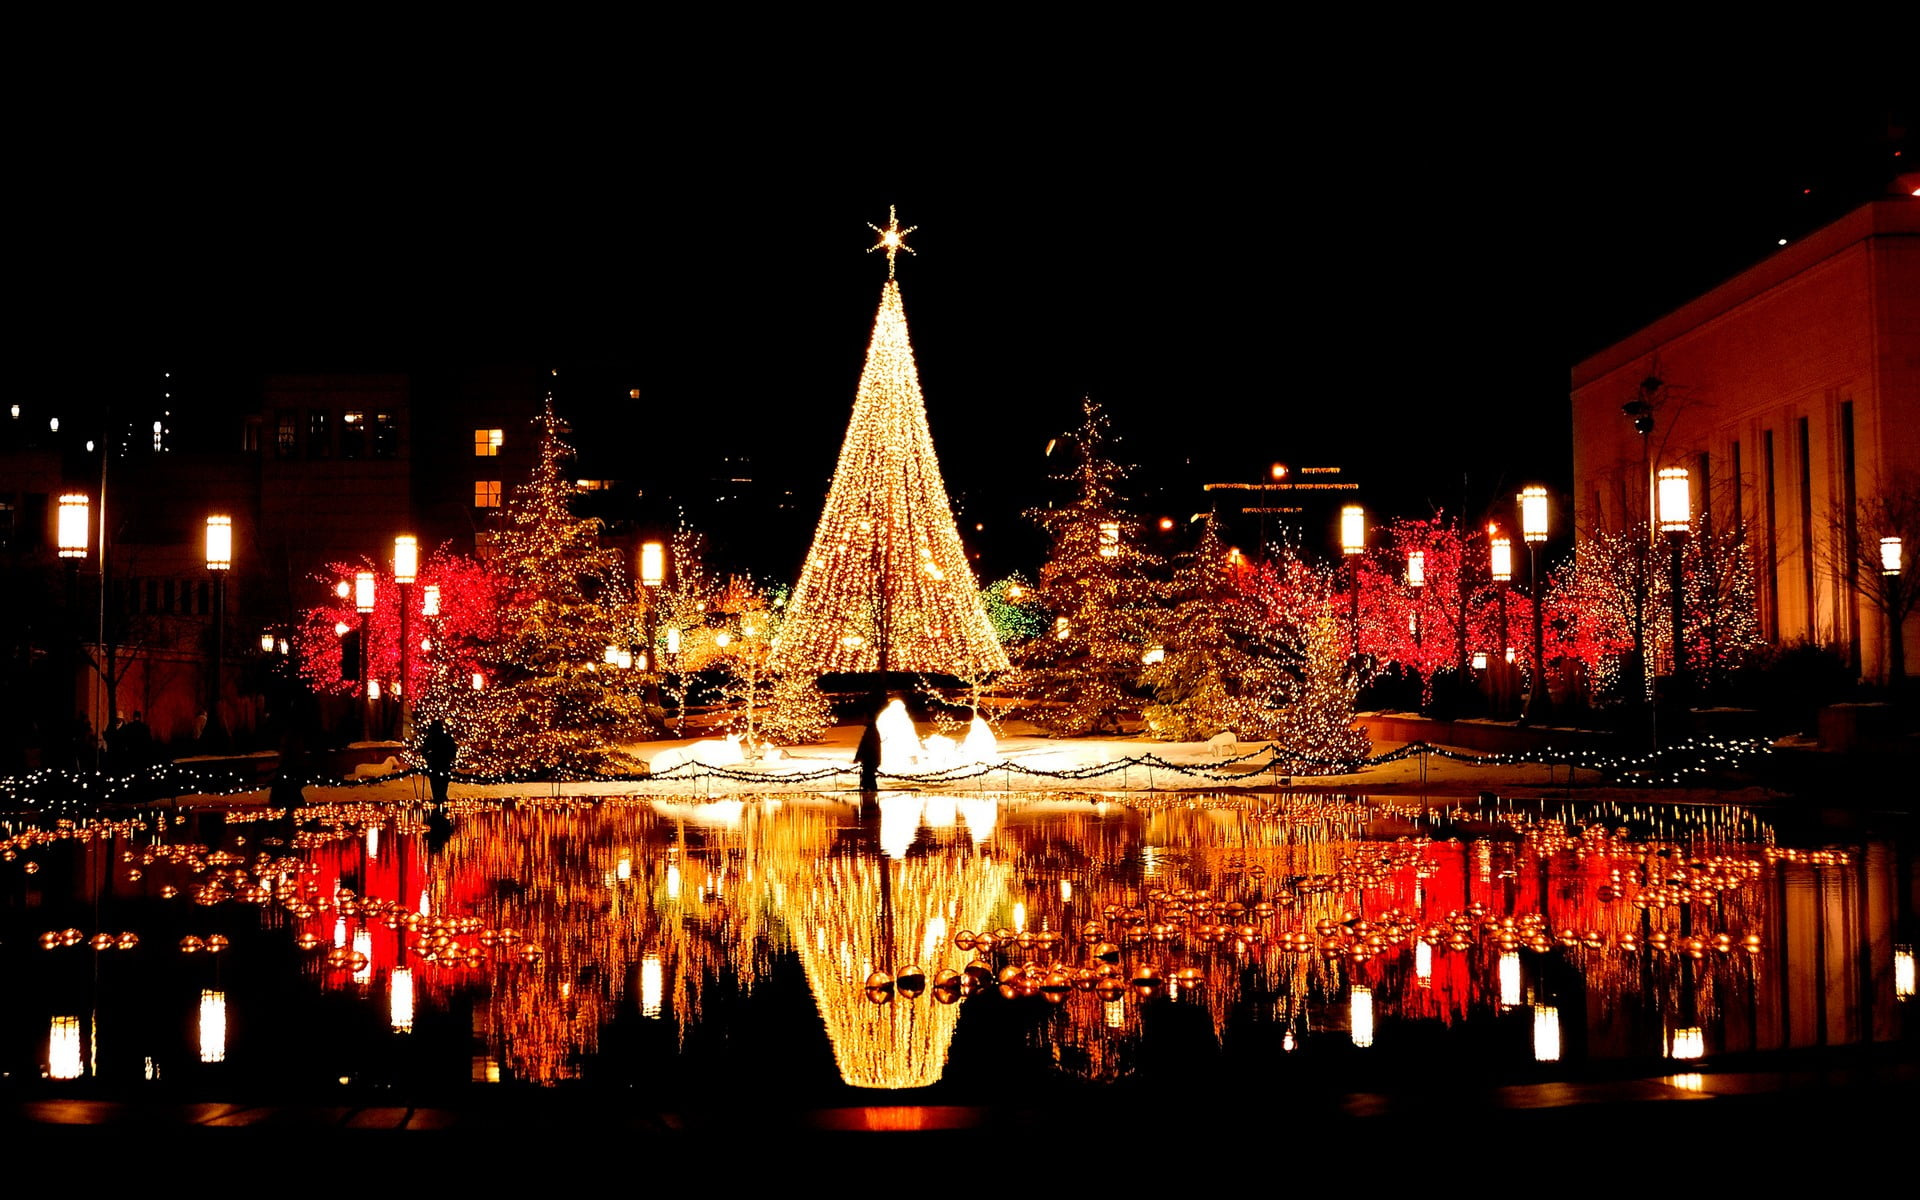 where to celebrate christmas in india - Do They Celebrate Christmas In India